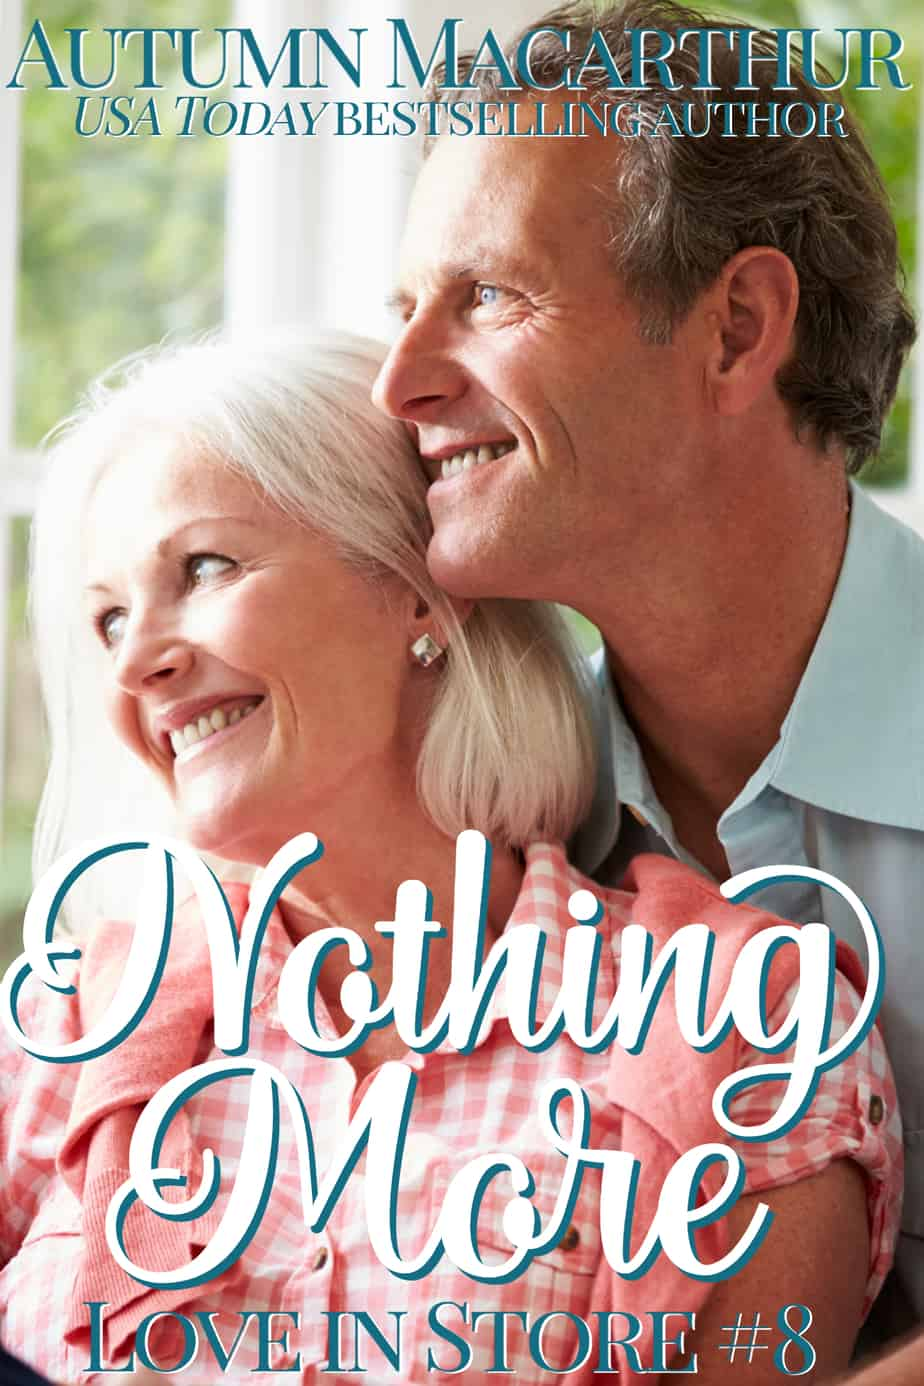 Cover image for London summer sweet inspirational romance Nothing More by Autumn Macarthur